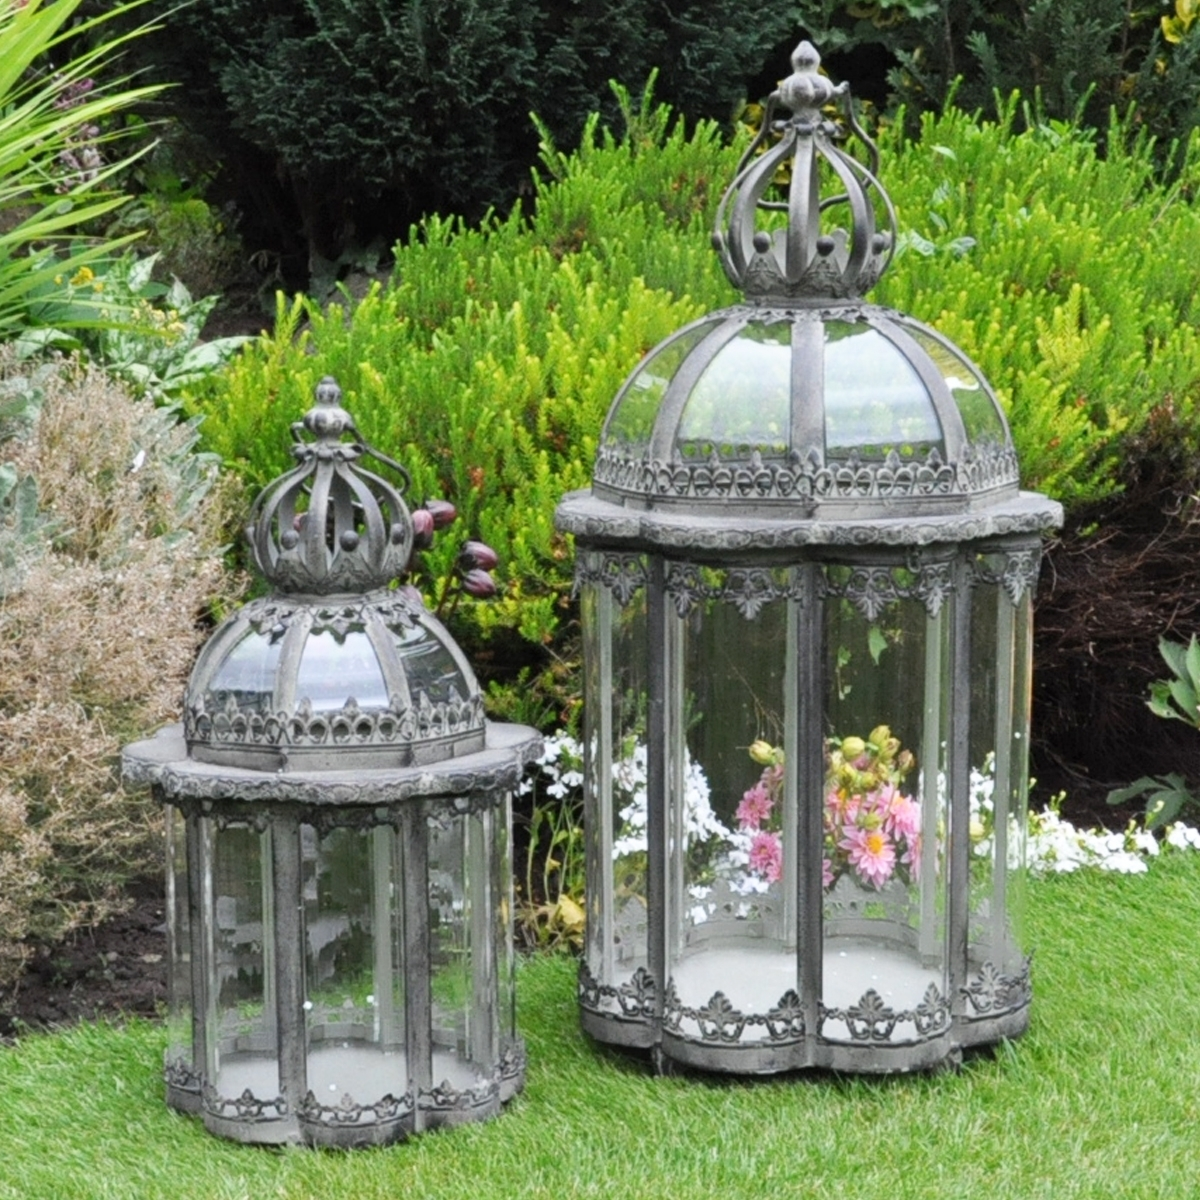 Japanese Stone Lamp. Excellent Download Symbolic Stone Lamp At with regard to Outdoor Japanese Lanterns for Sale (Image 13 of 20)